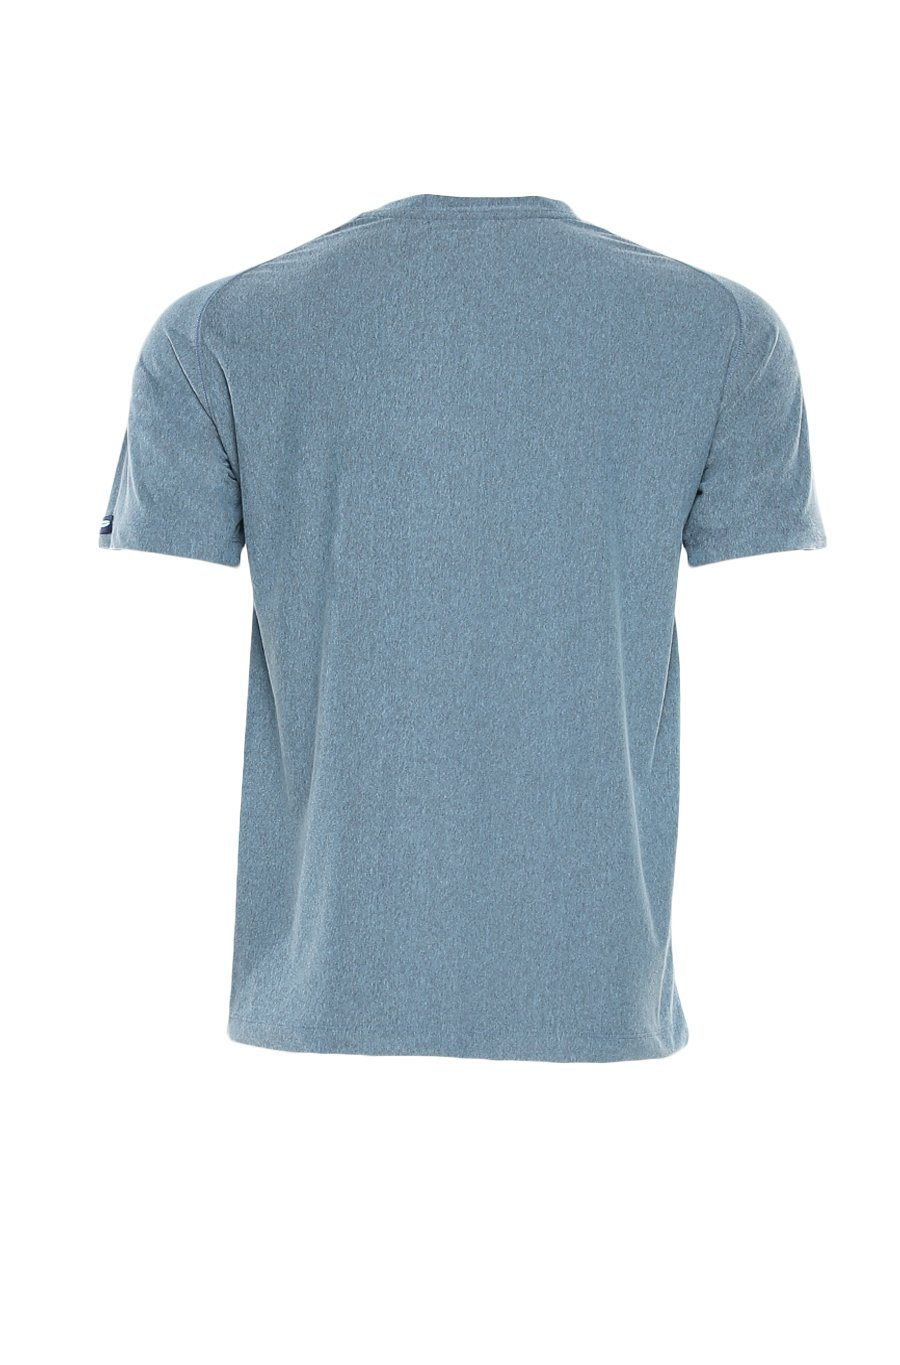 Shore Men's Active Crew Tee - Faded Denim - Shore